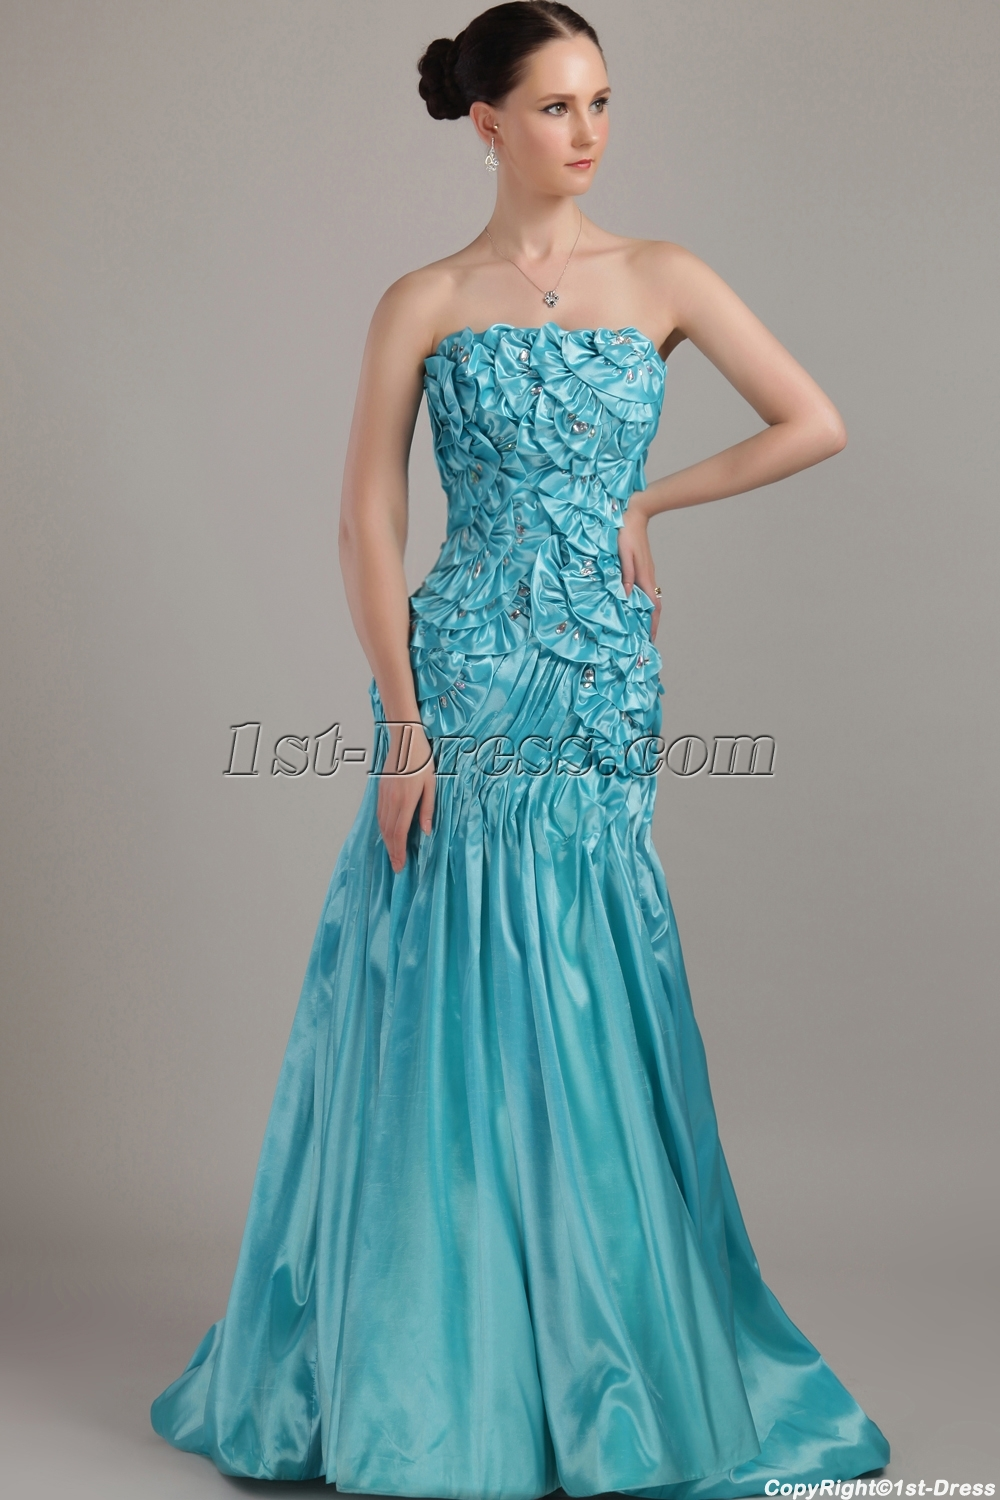 images/201304/big/Strapless-Teal-Unique-Pretty-Prom-Gown-IMG_3253-1061-b-1-1366192076.jpg